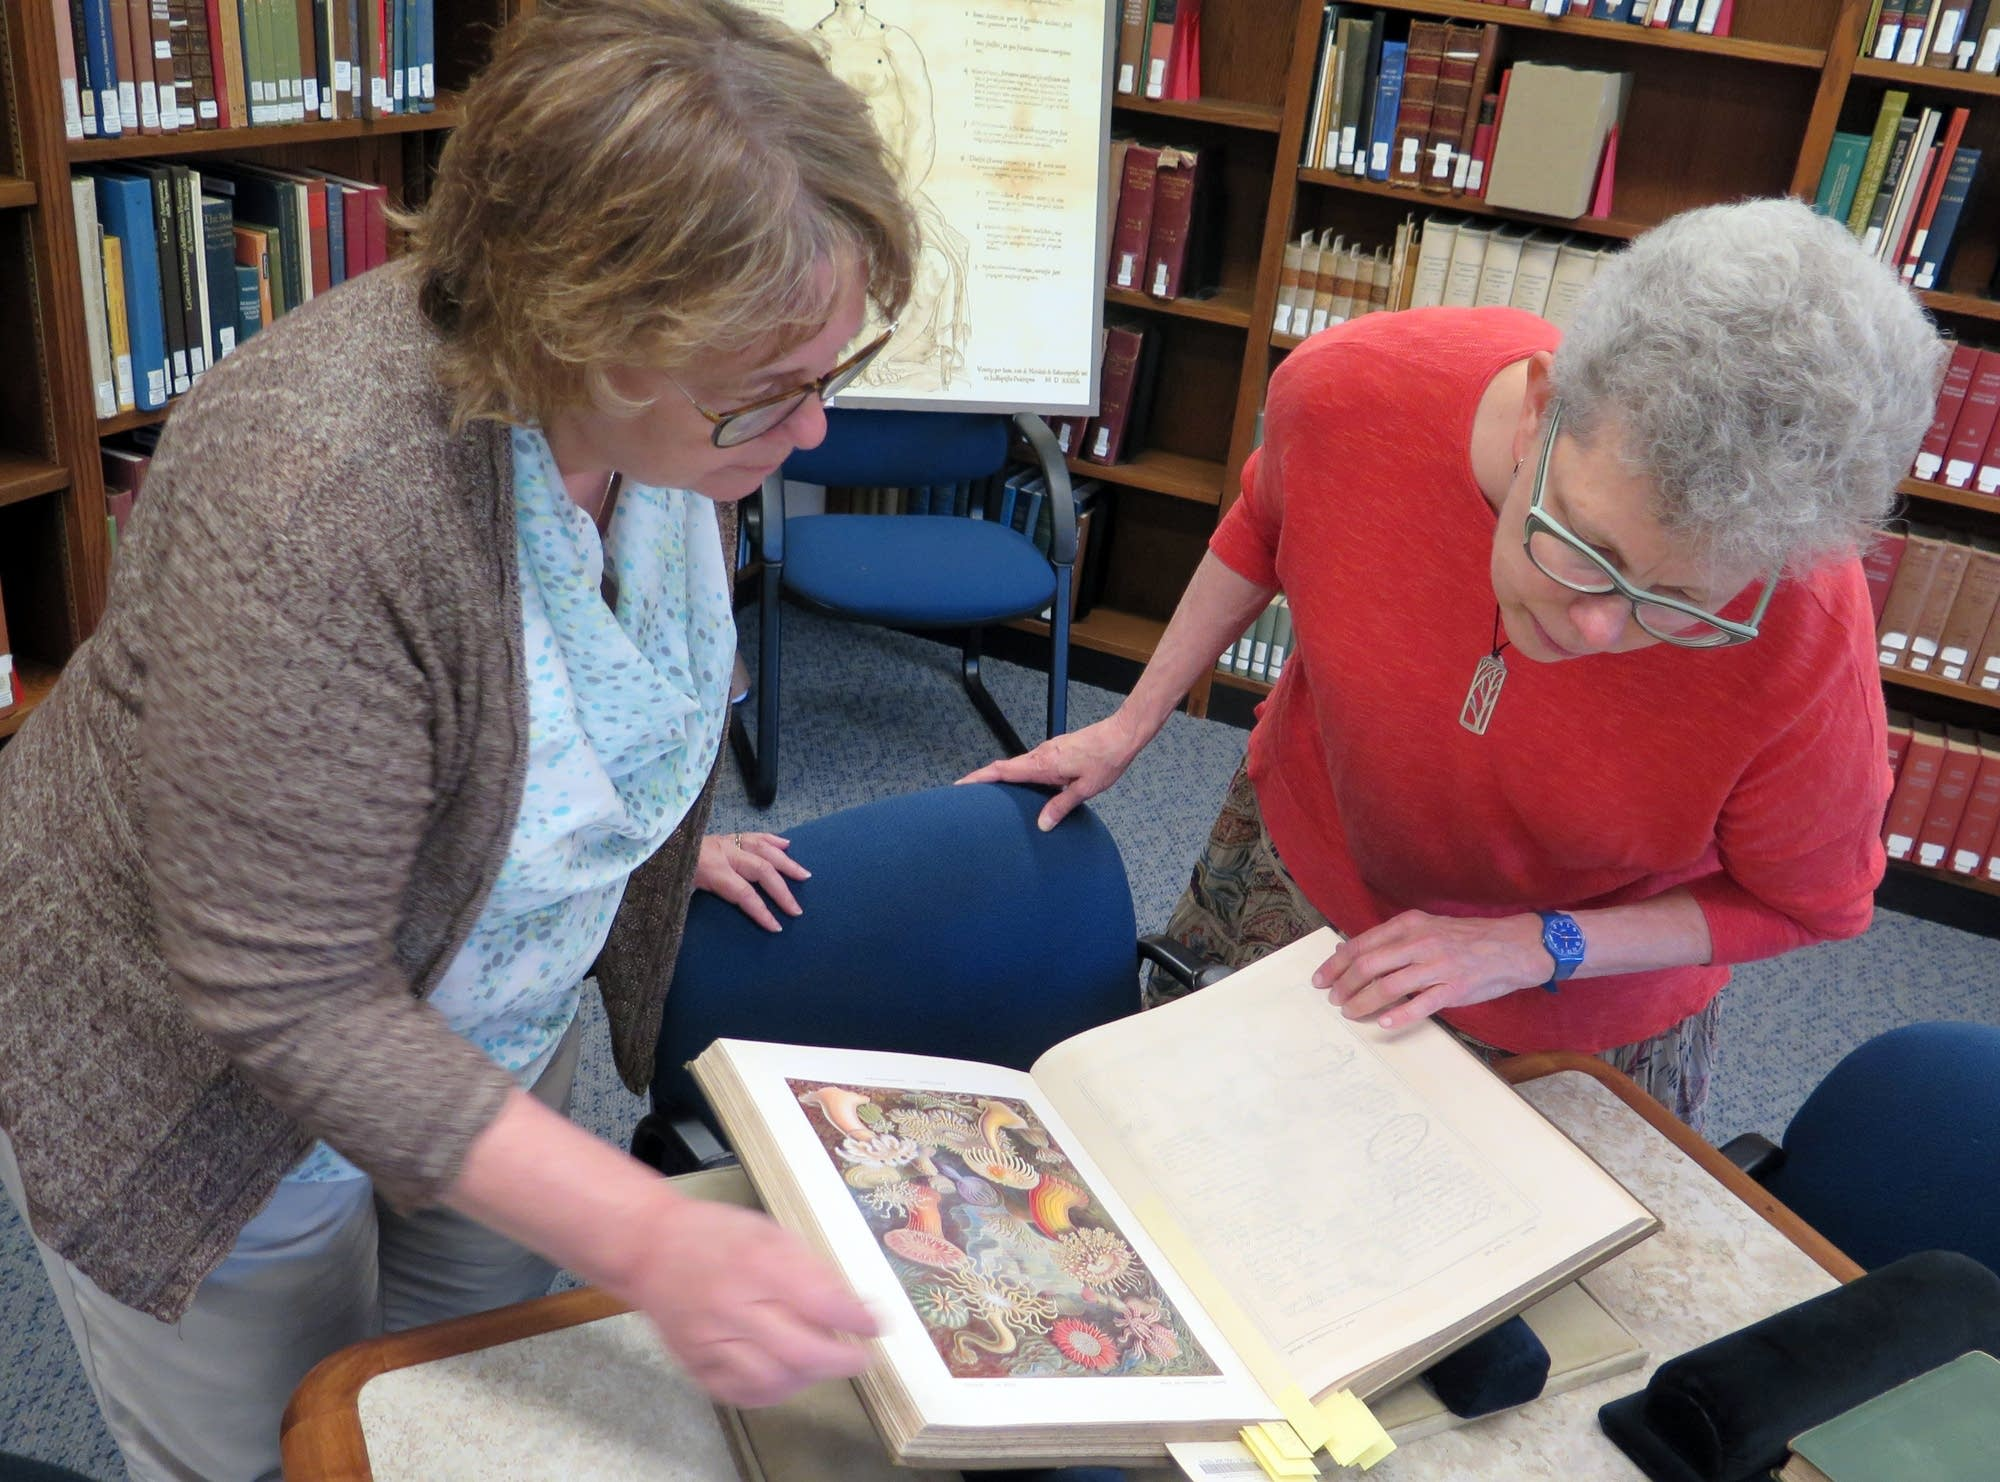 Lois Hendrickson and Jennifer Gunn examine a rare medical text.